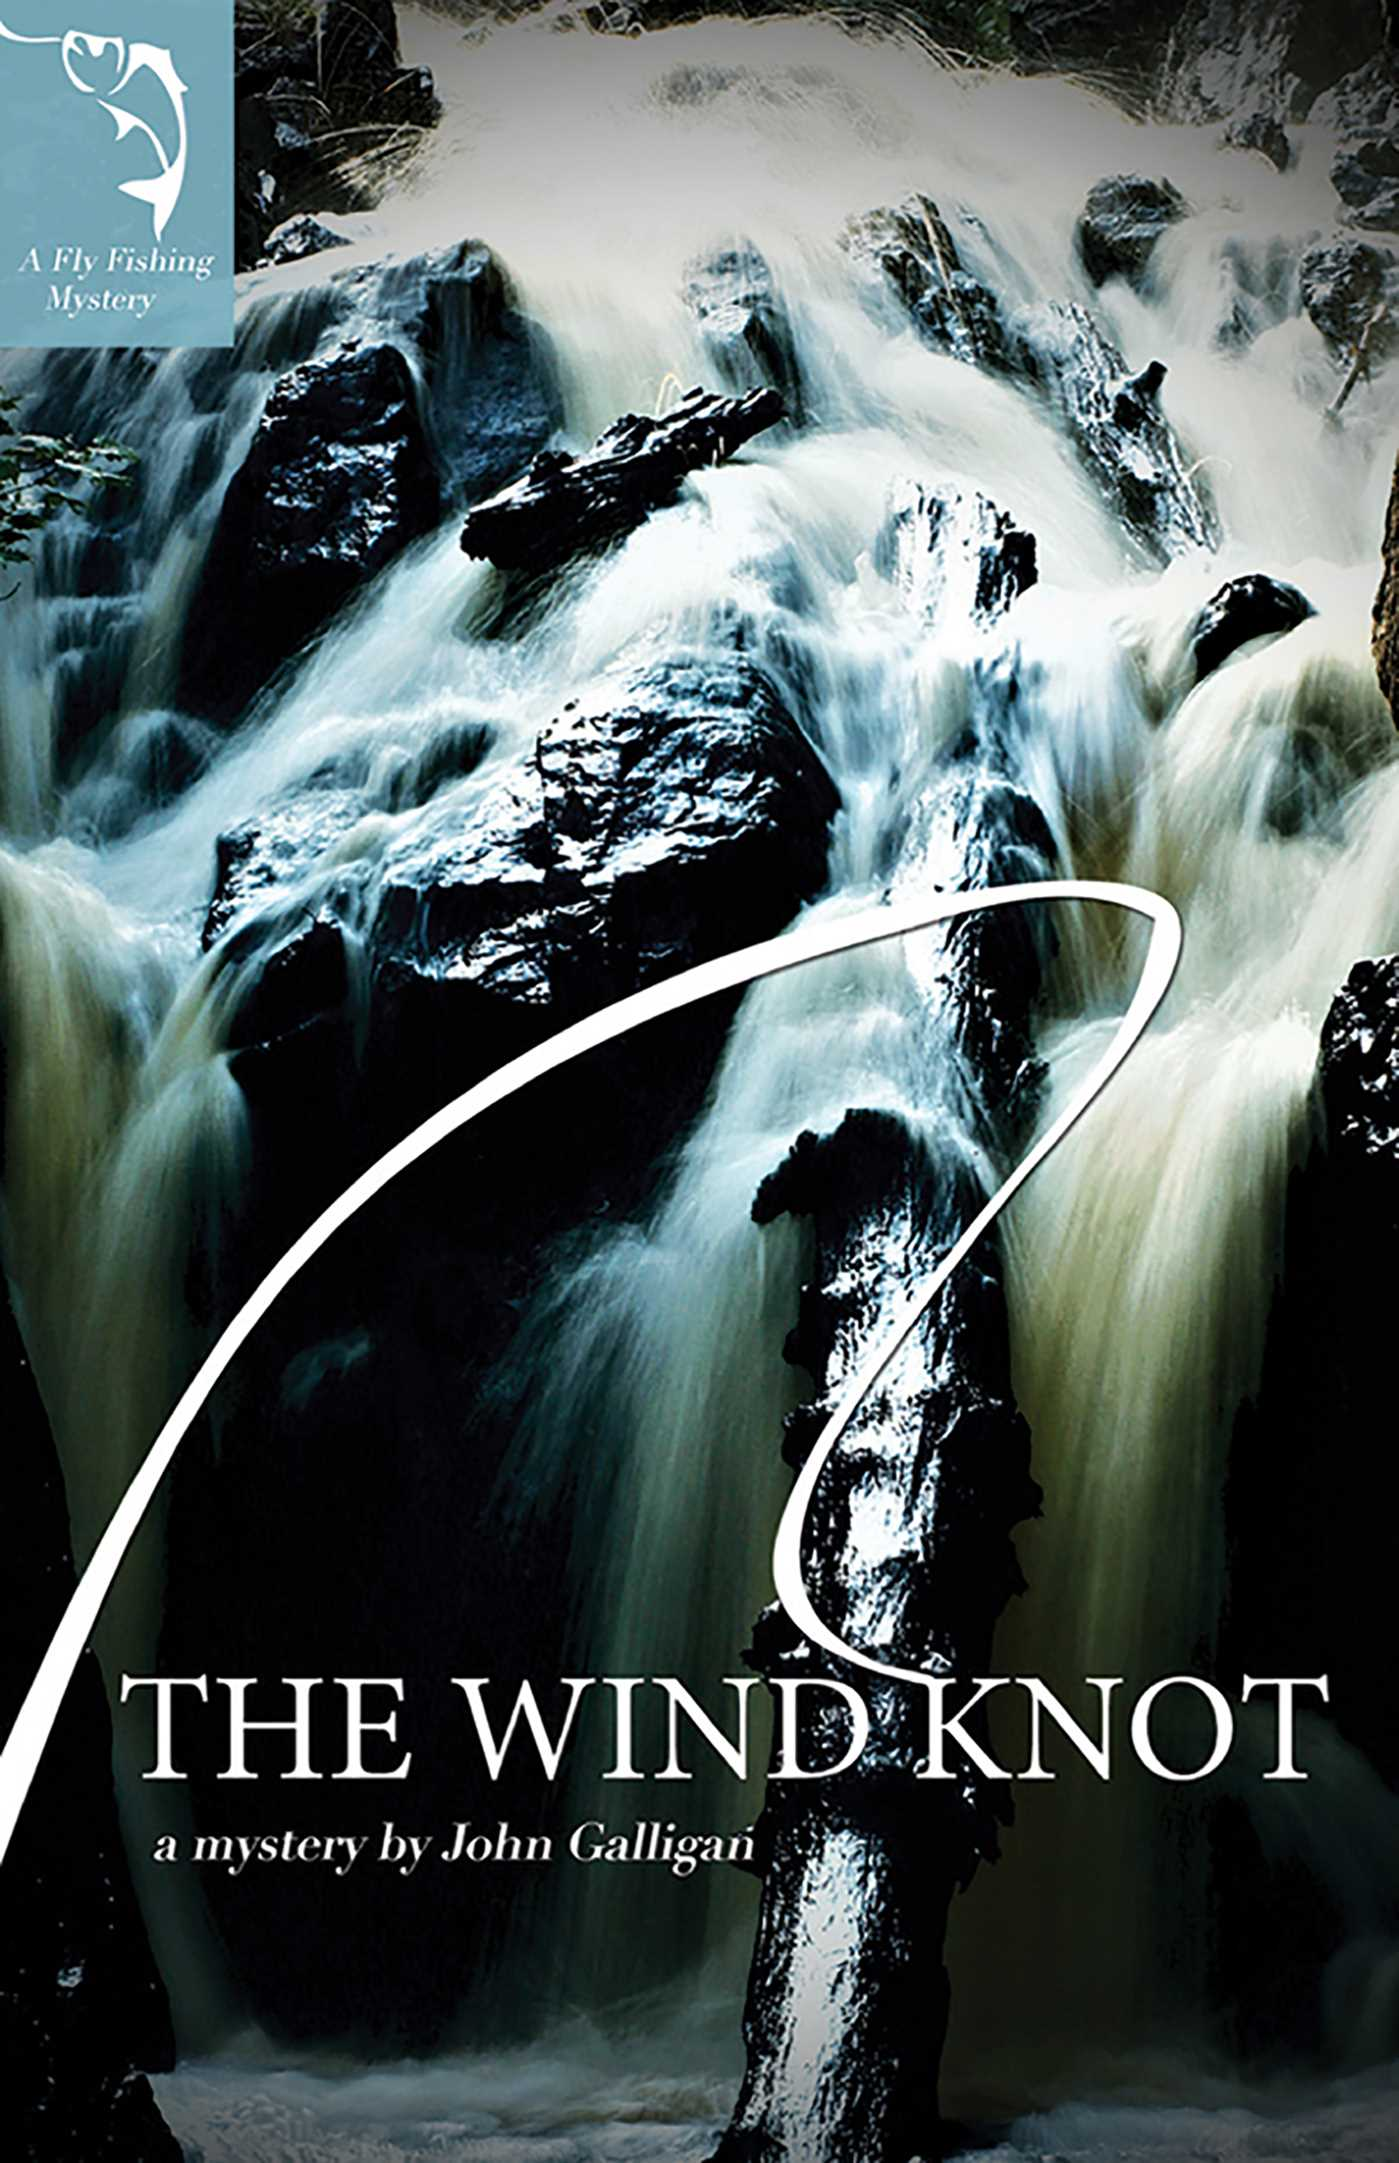 The Wind Knot - book cover